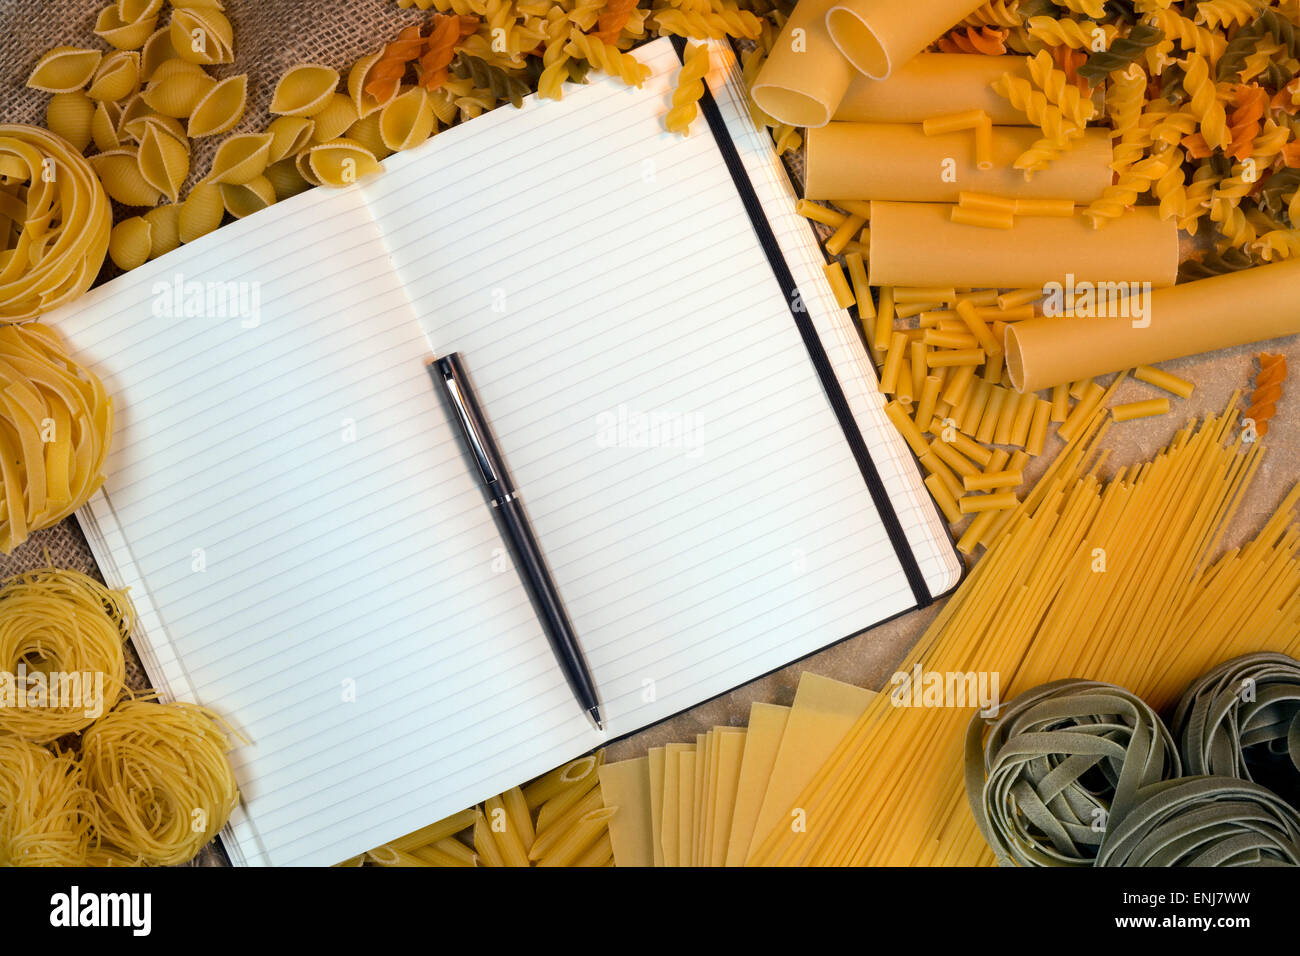 Italian Pasta - Blank Recipe Book pages with space for text - Stock Image